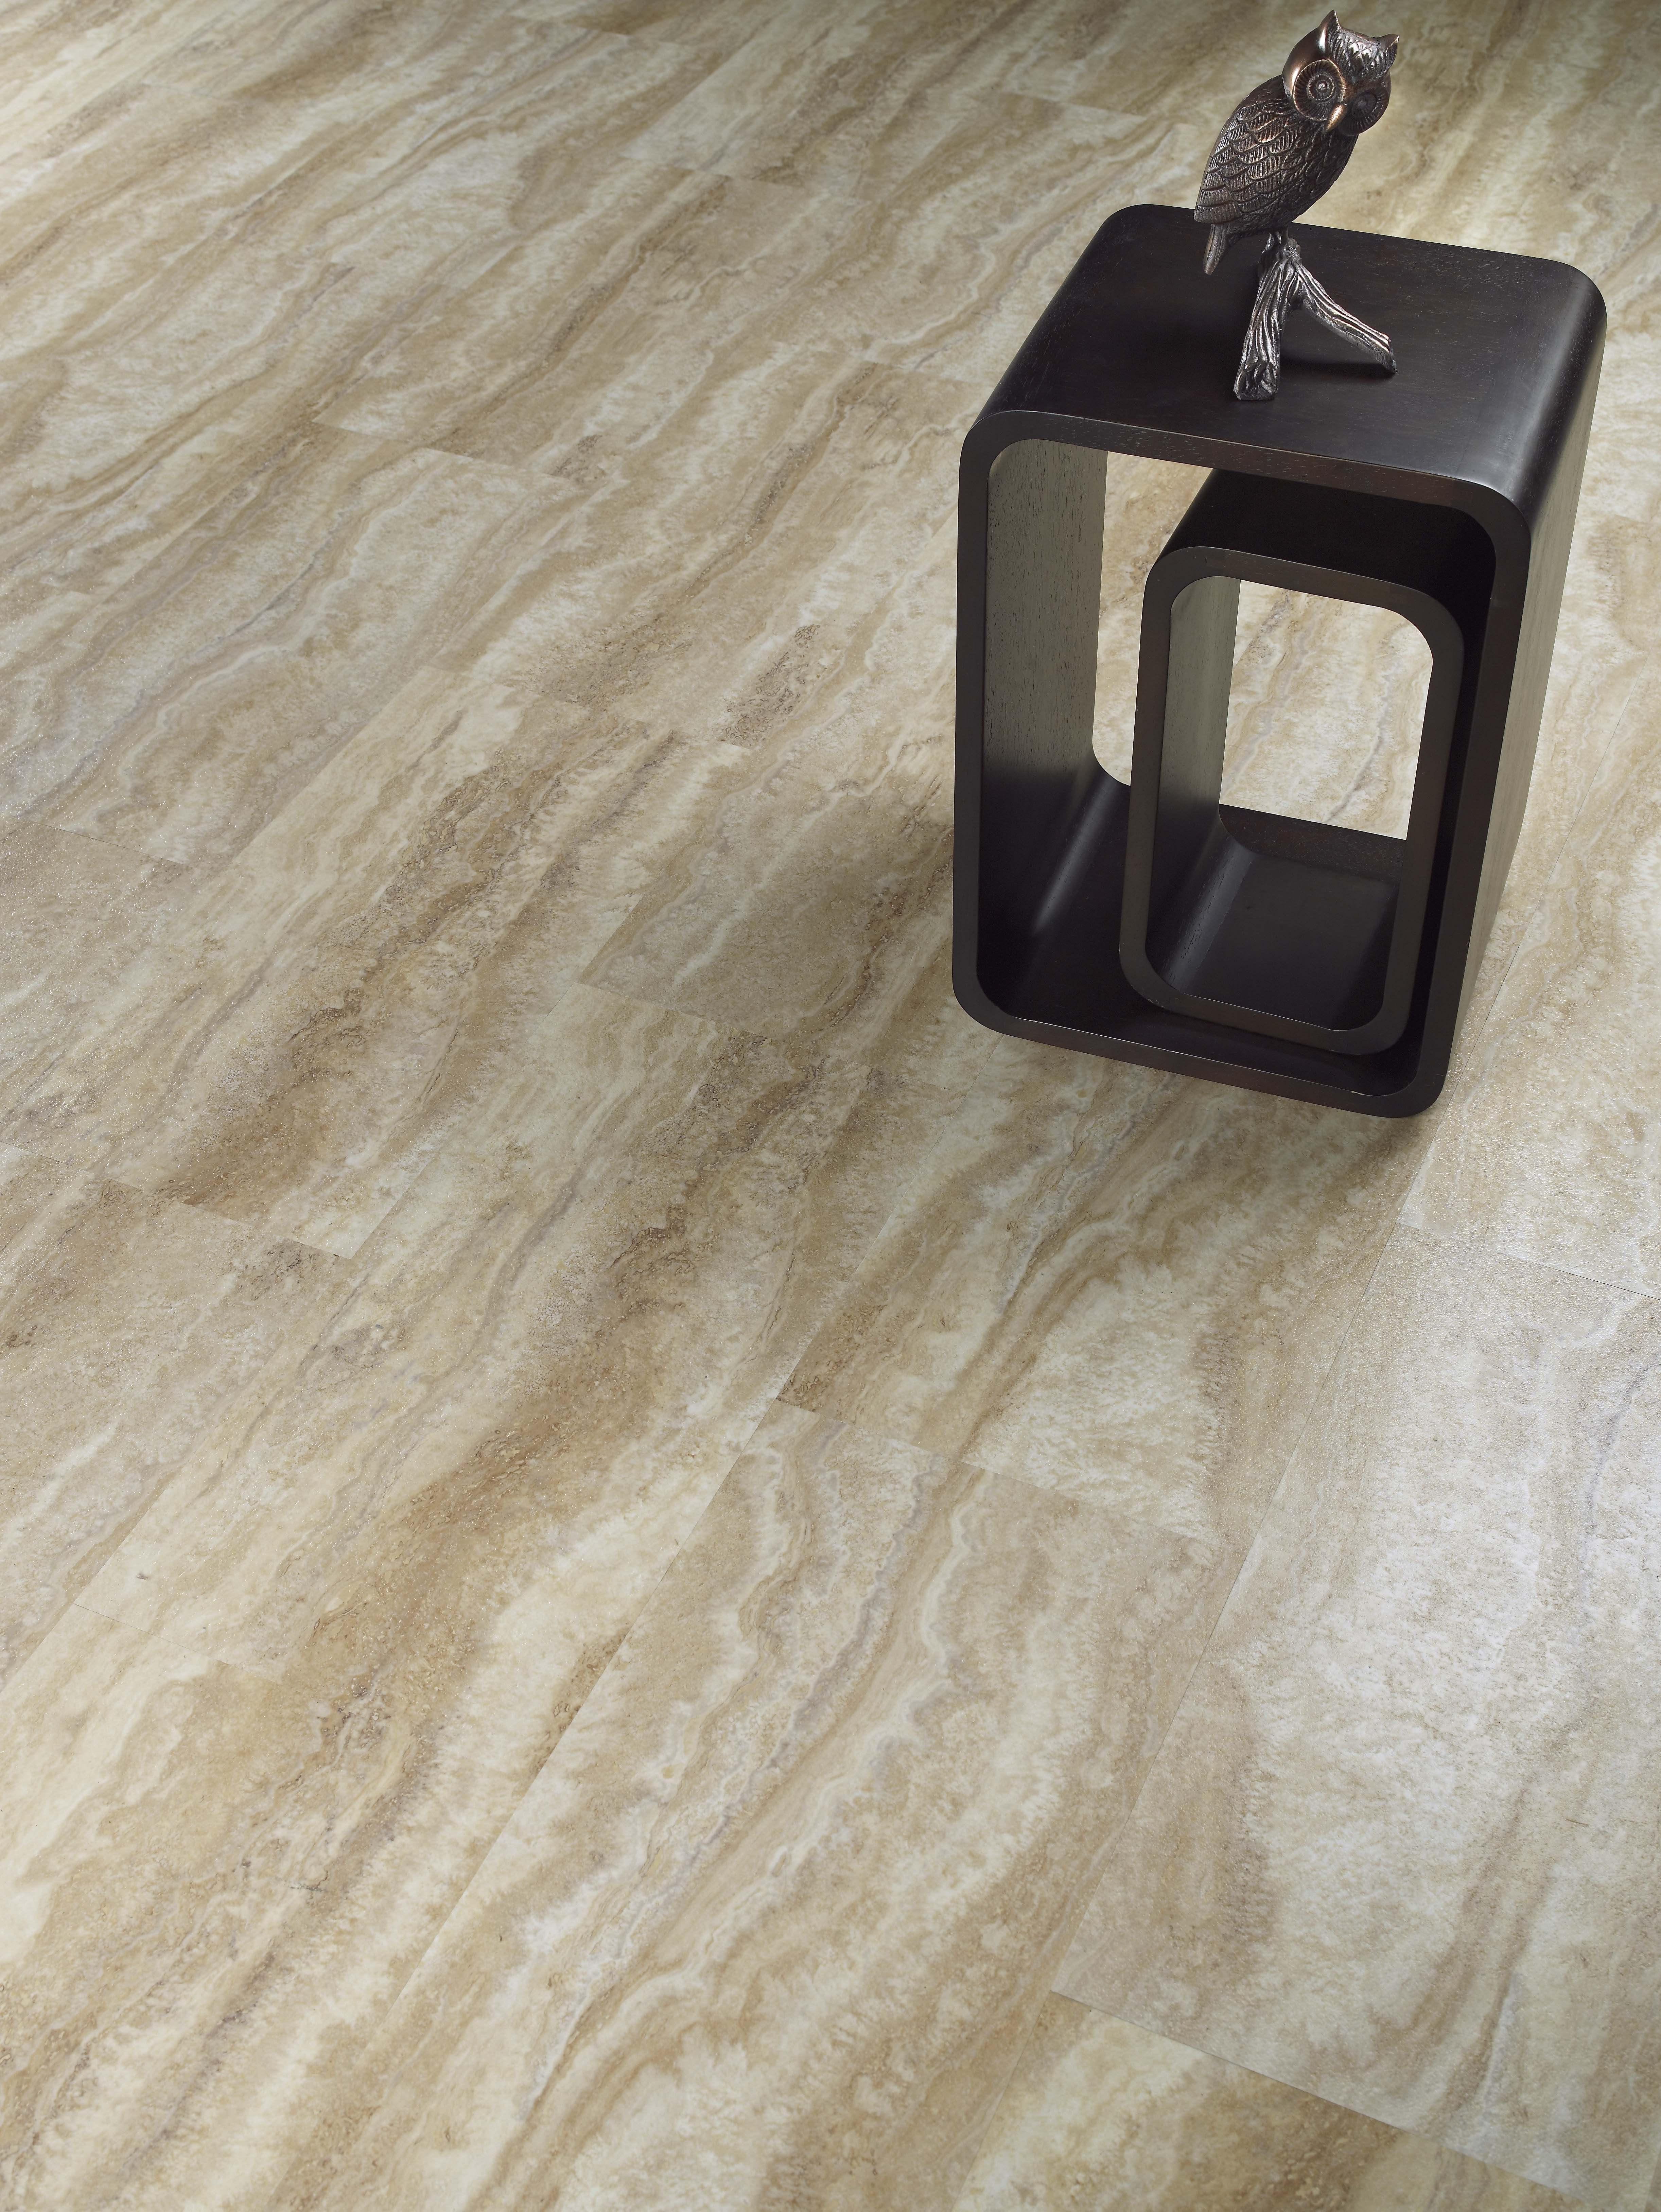 EarthWerks Flooring Inspired by Nature Luxury vinyl